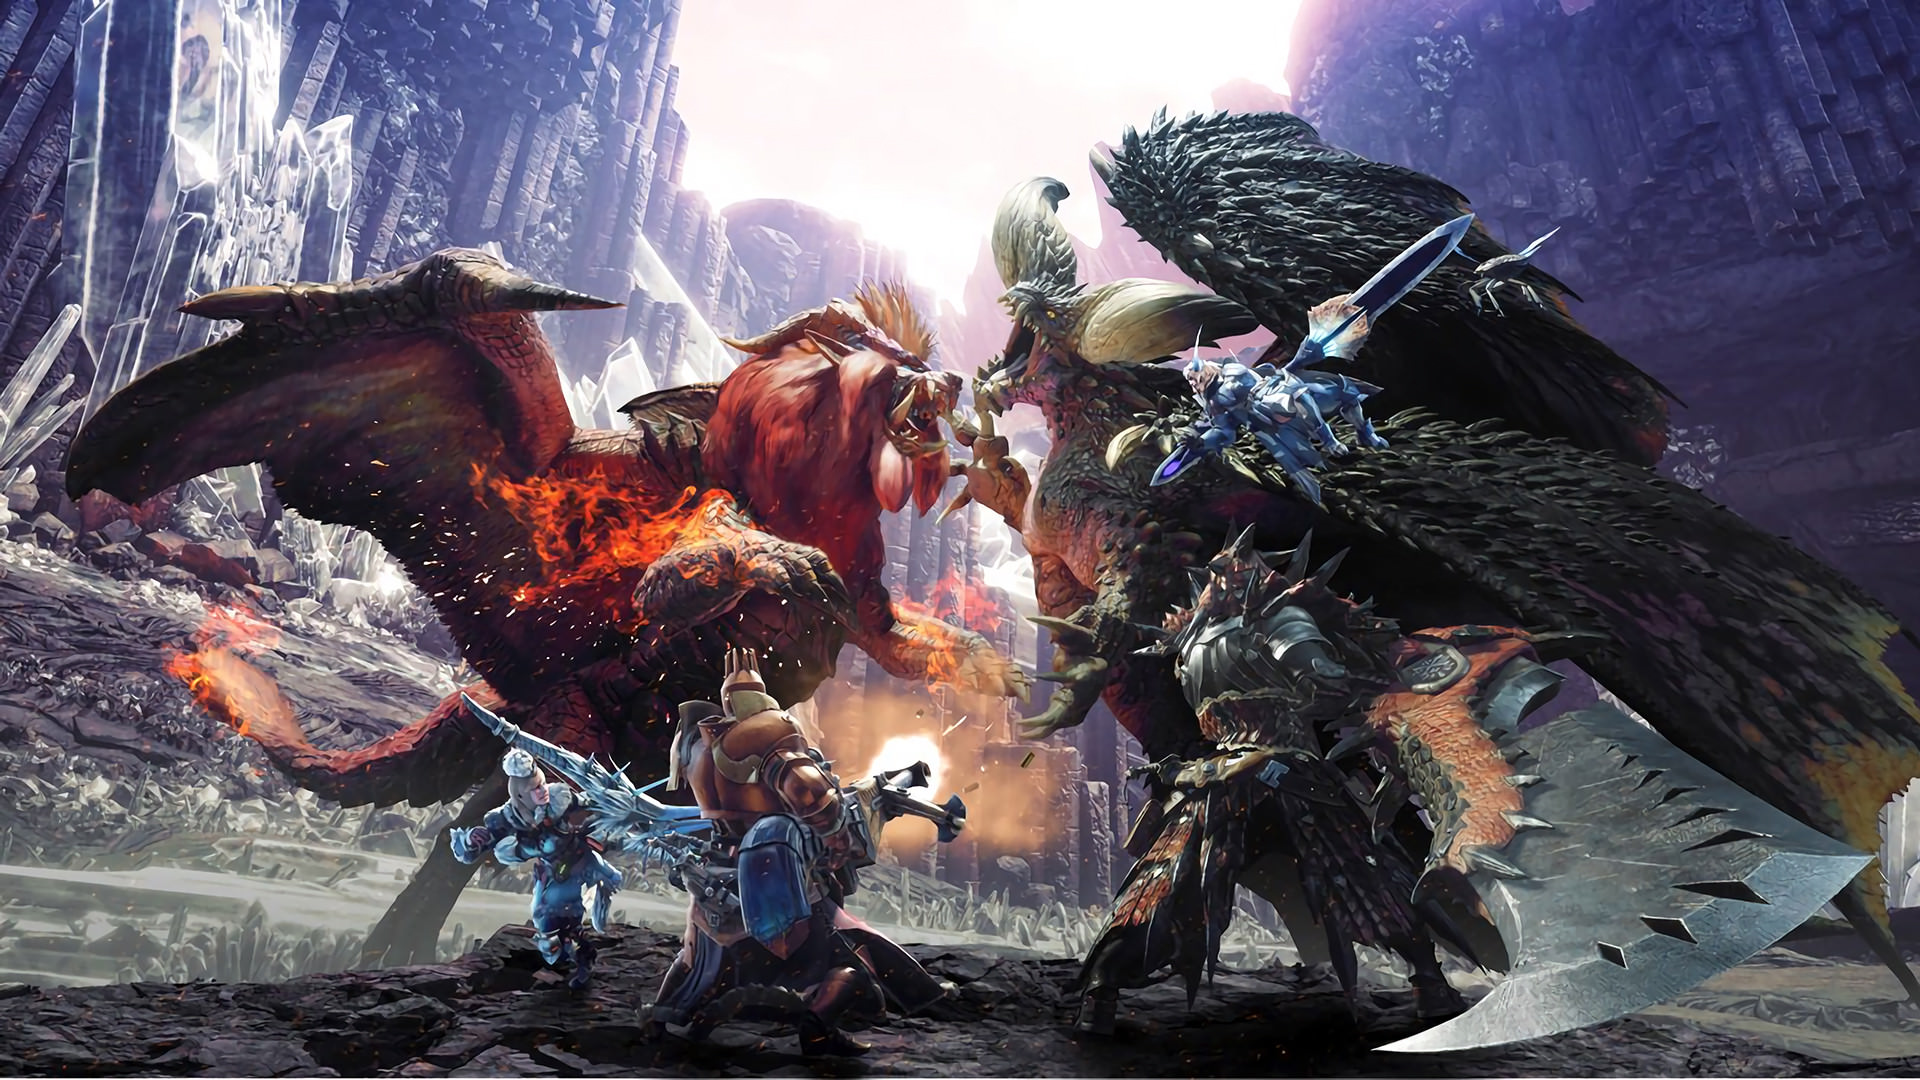 Monster Hunter World   Game Release Hype     Gaming and Chill Podcast We are beginning the final week stretch till Monster Hunter World is  released and I know we have talked at great length about this particular  game but it s